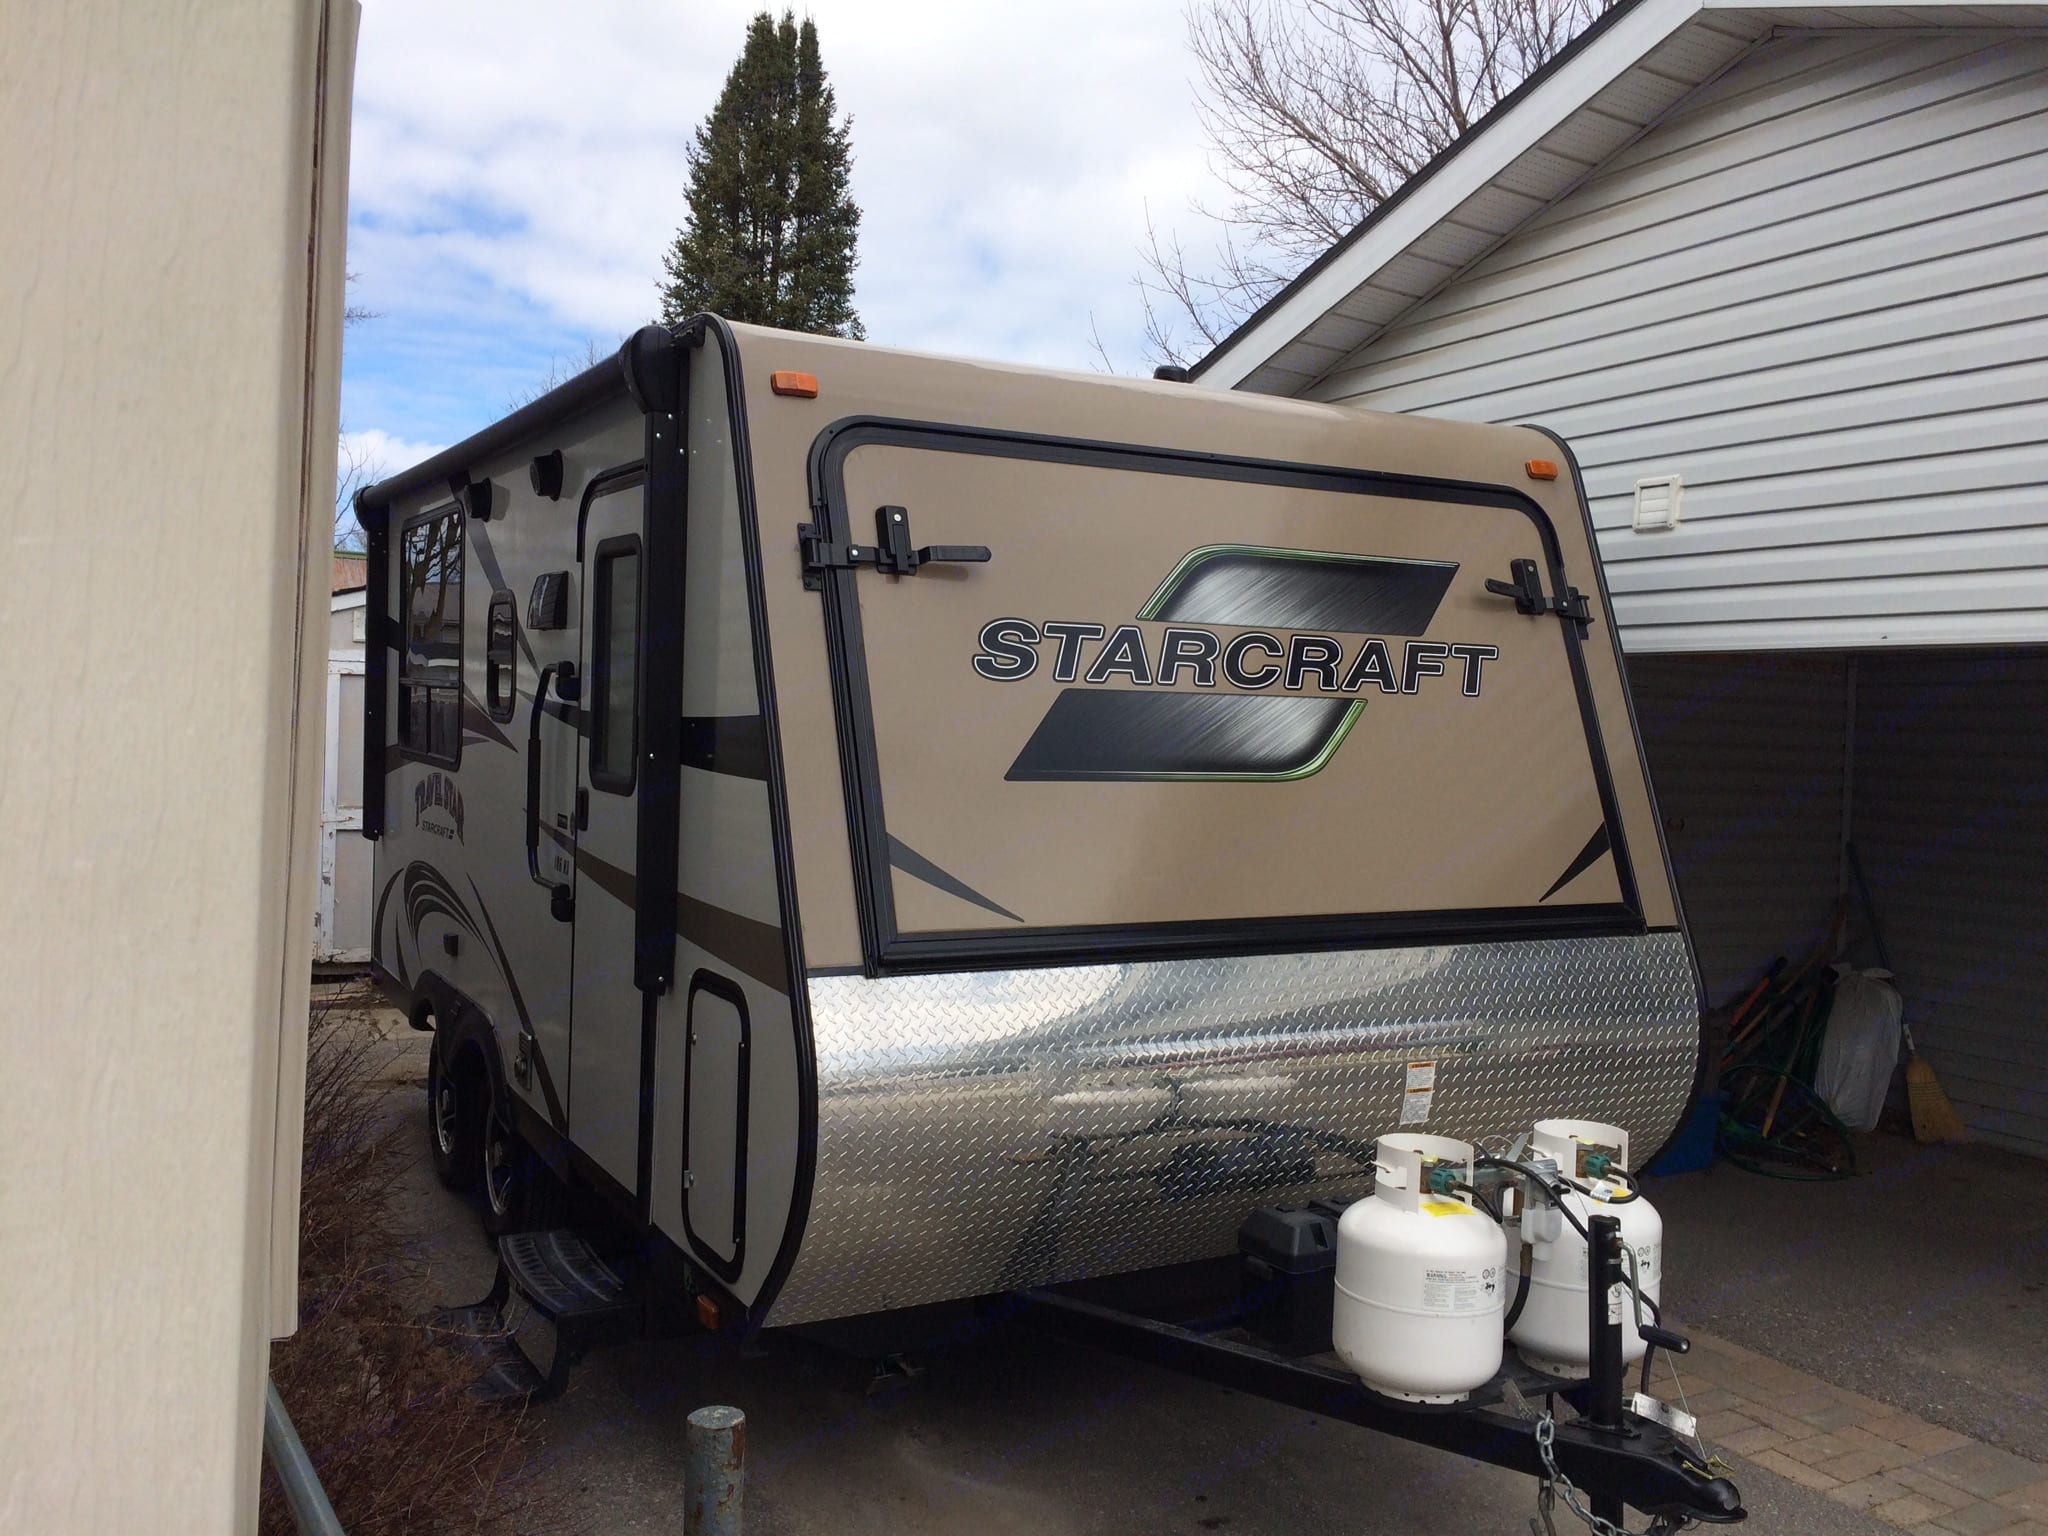 Hybrid makes towing a breeze and the size is perfect for all camp grounds. Larger ones are hard to accommodate . Starcraft Travel Star 2016